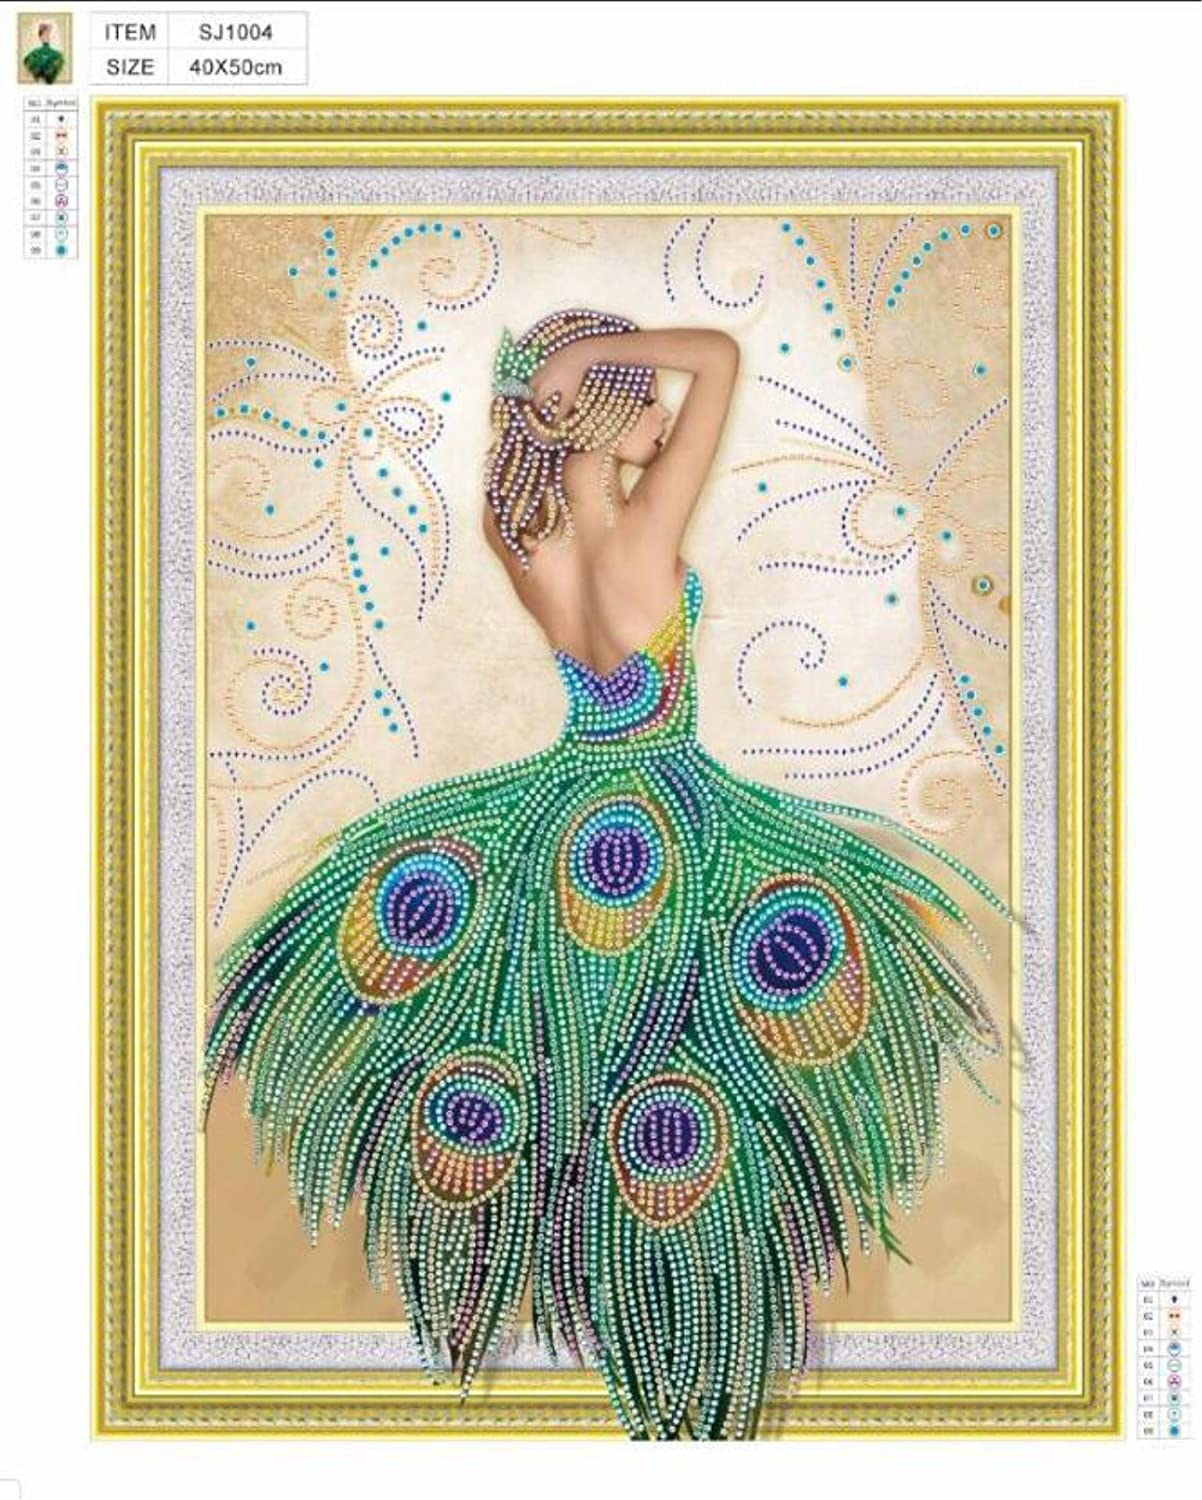 5D DIY Partial Drill Crystal Rhinestone Embroidery Cross Stitch Home Wall D/écor Arts Craft Canvas,Peacock Lady,15.75 x 19.68 inch KoKoWill Special Shaped Diamond Painting Kits for Adults